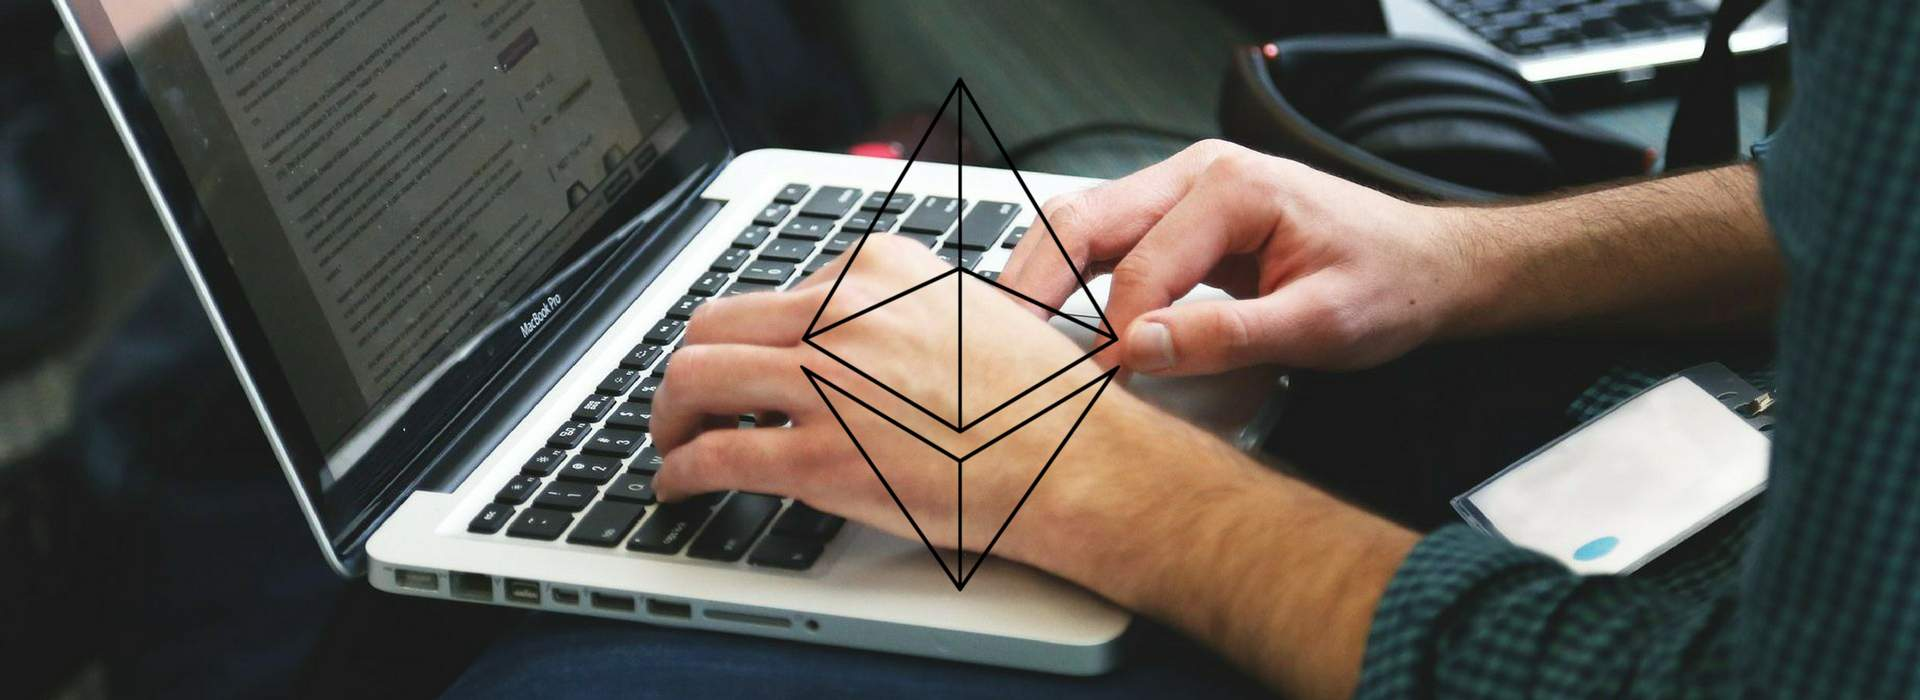 ethereum_smart_contract_developer-slider